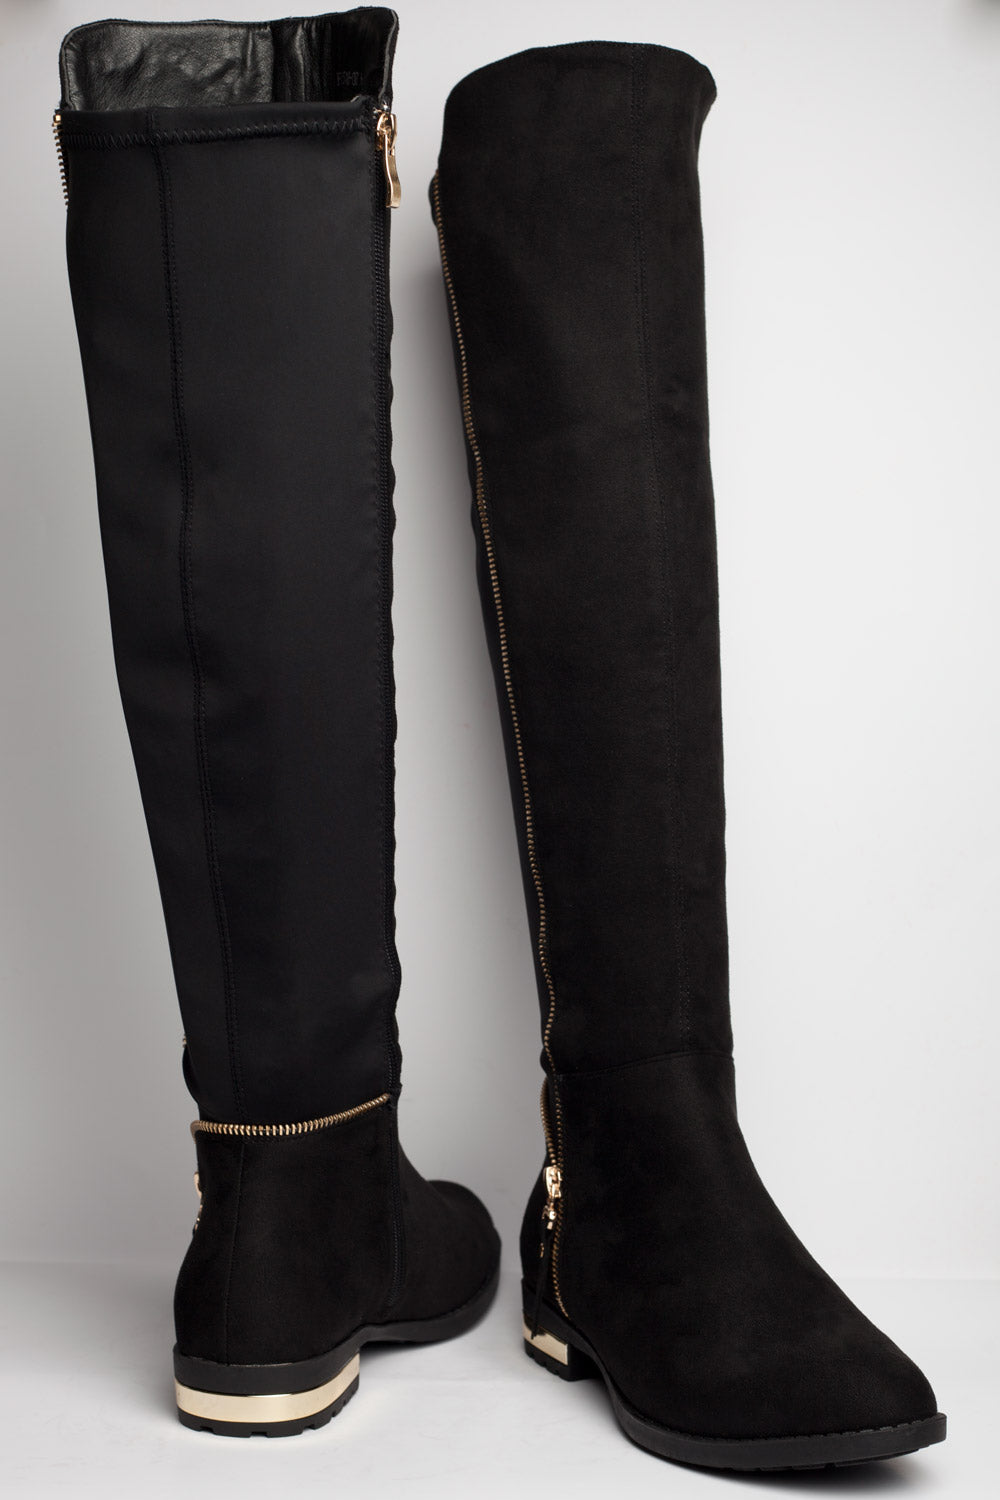 knee high boots sale uk